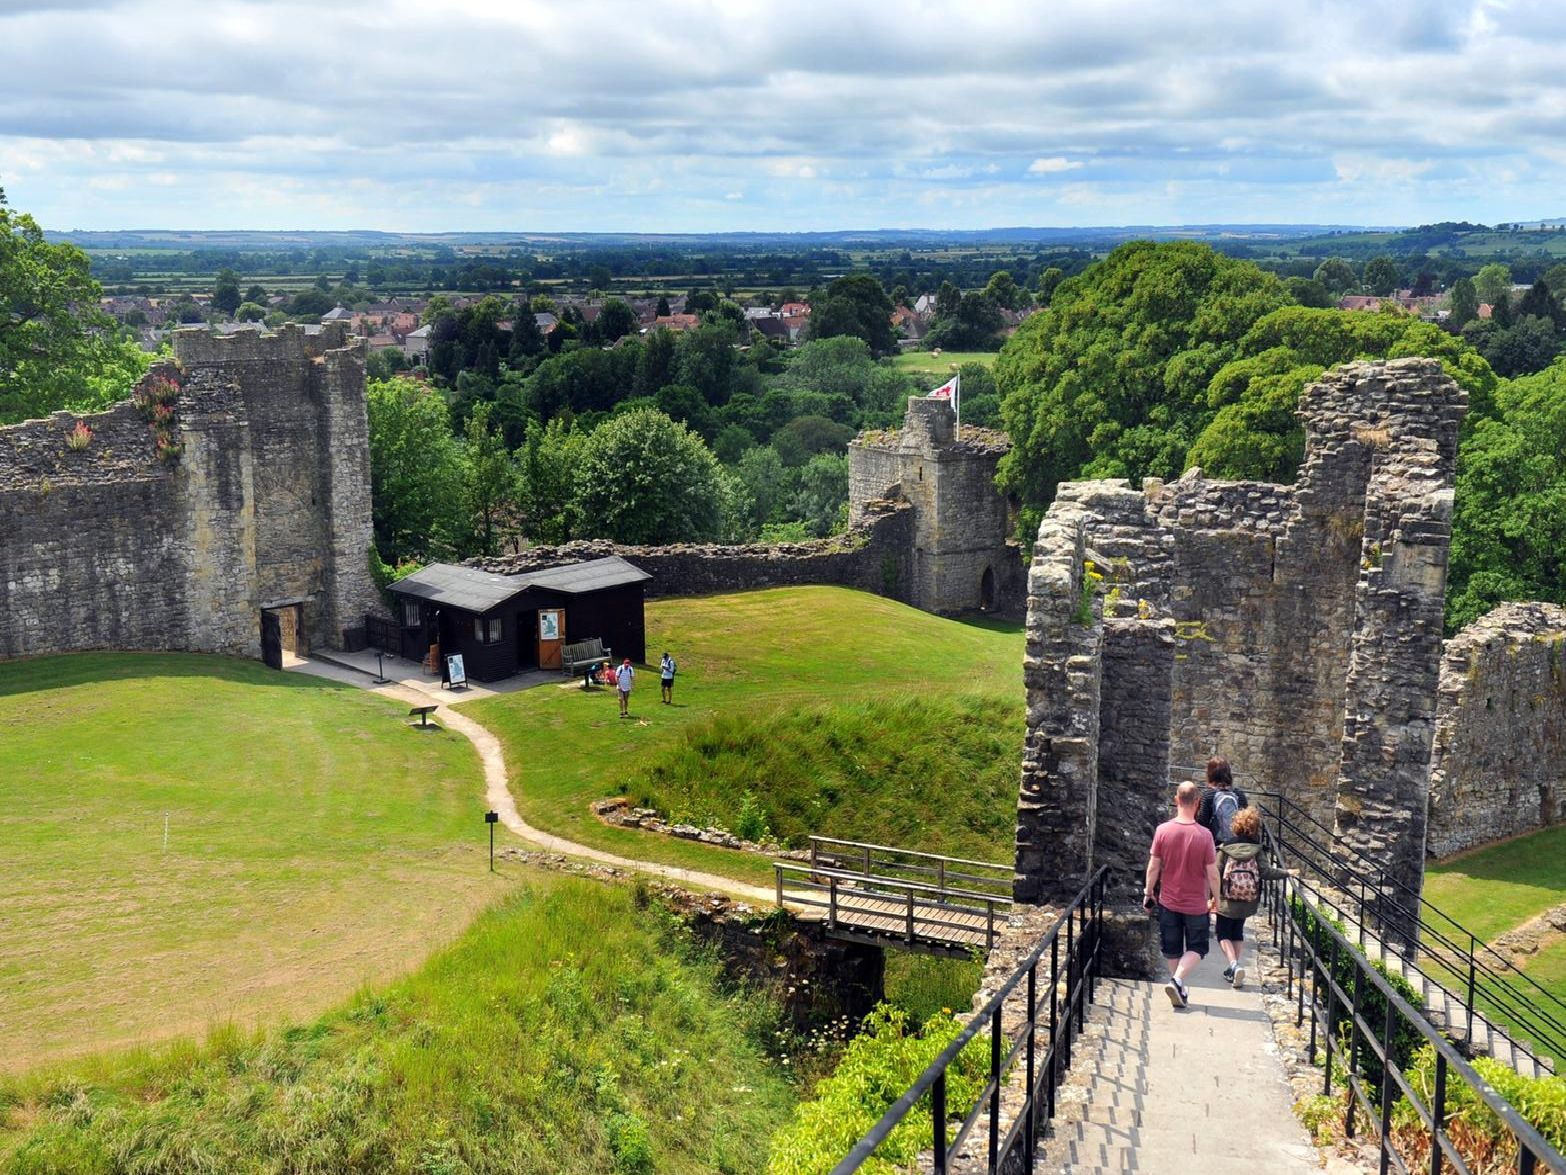 Pickering Castle is a motte-and-bailey fortification that offers extensive views of the North Yorkshire countryside